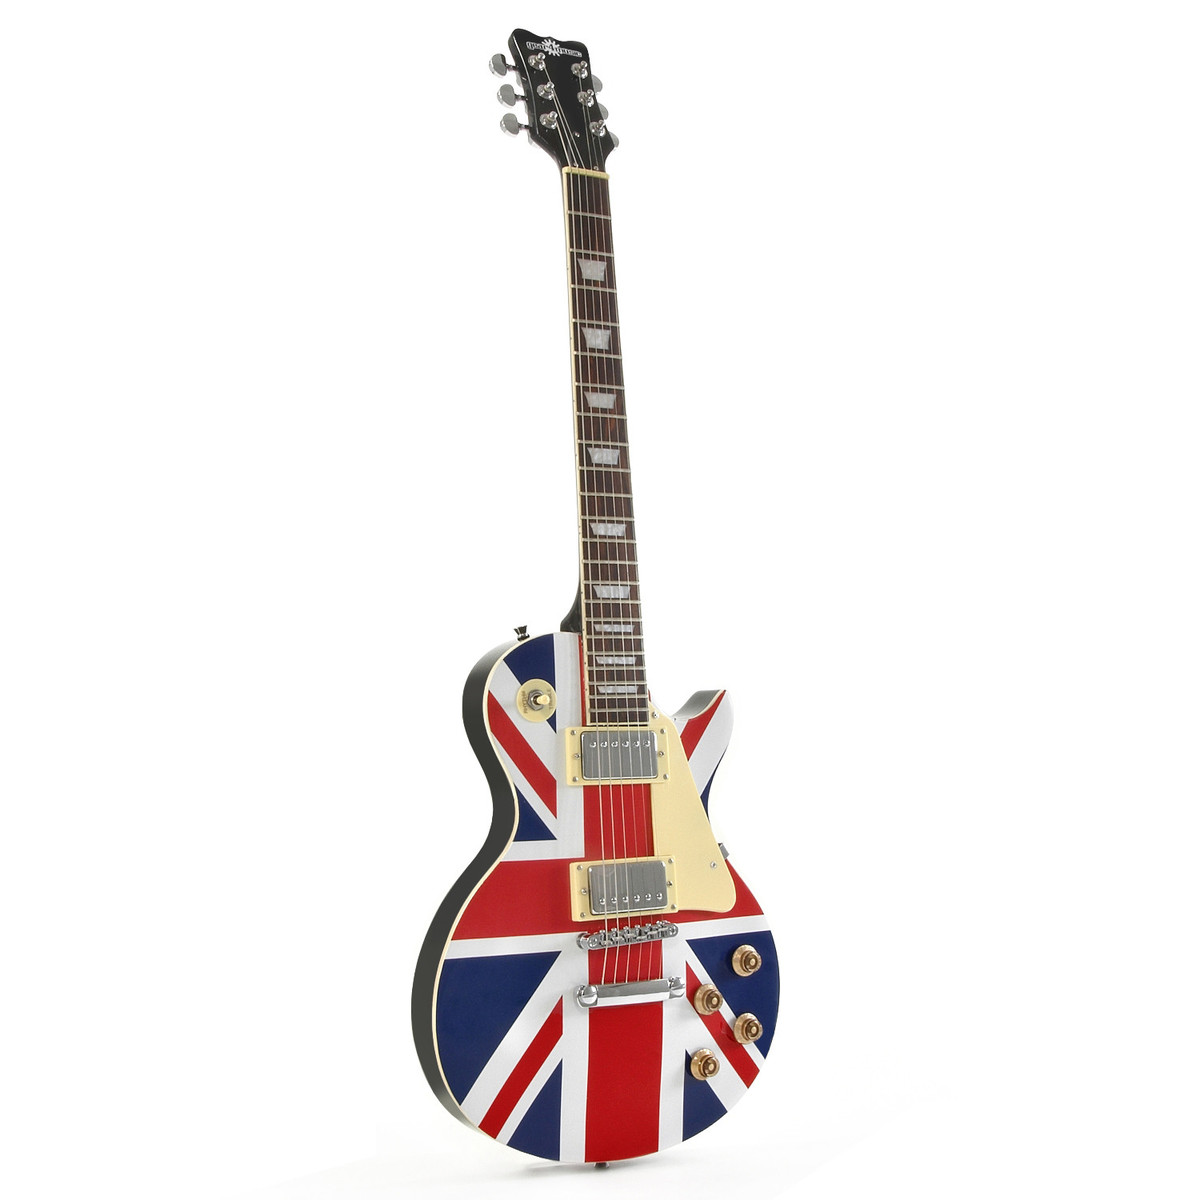 new jersey electric guitar by gear4music union jack nearly new at. Black Bedroom Furniture Sets. Home Design Ideas